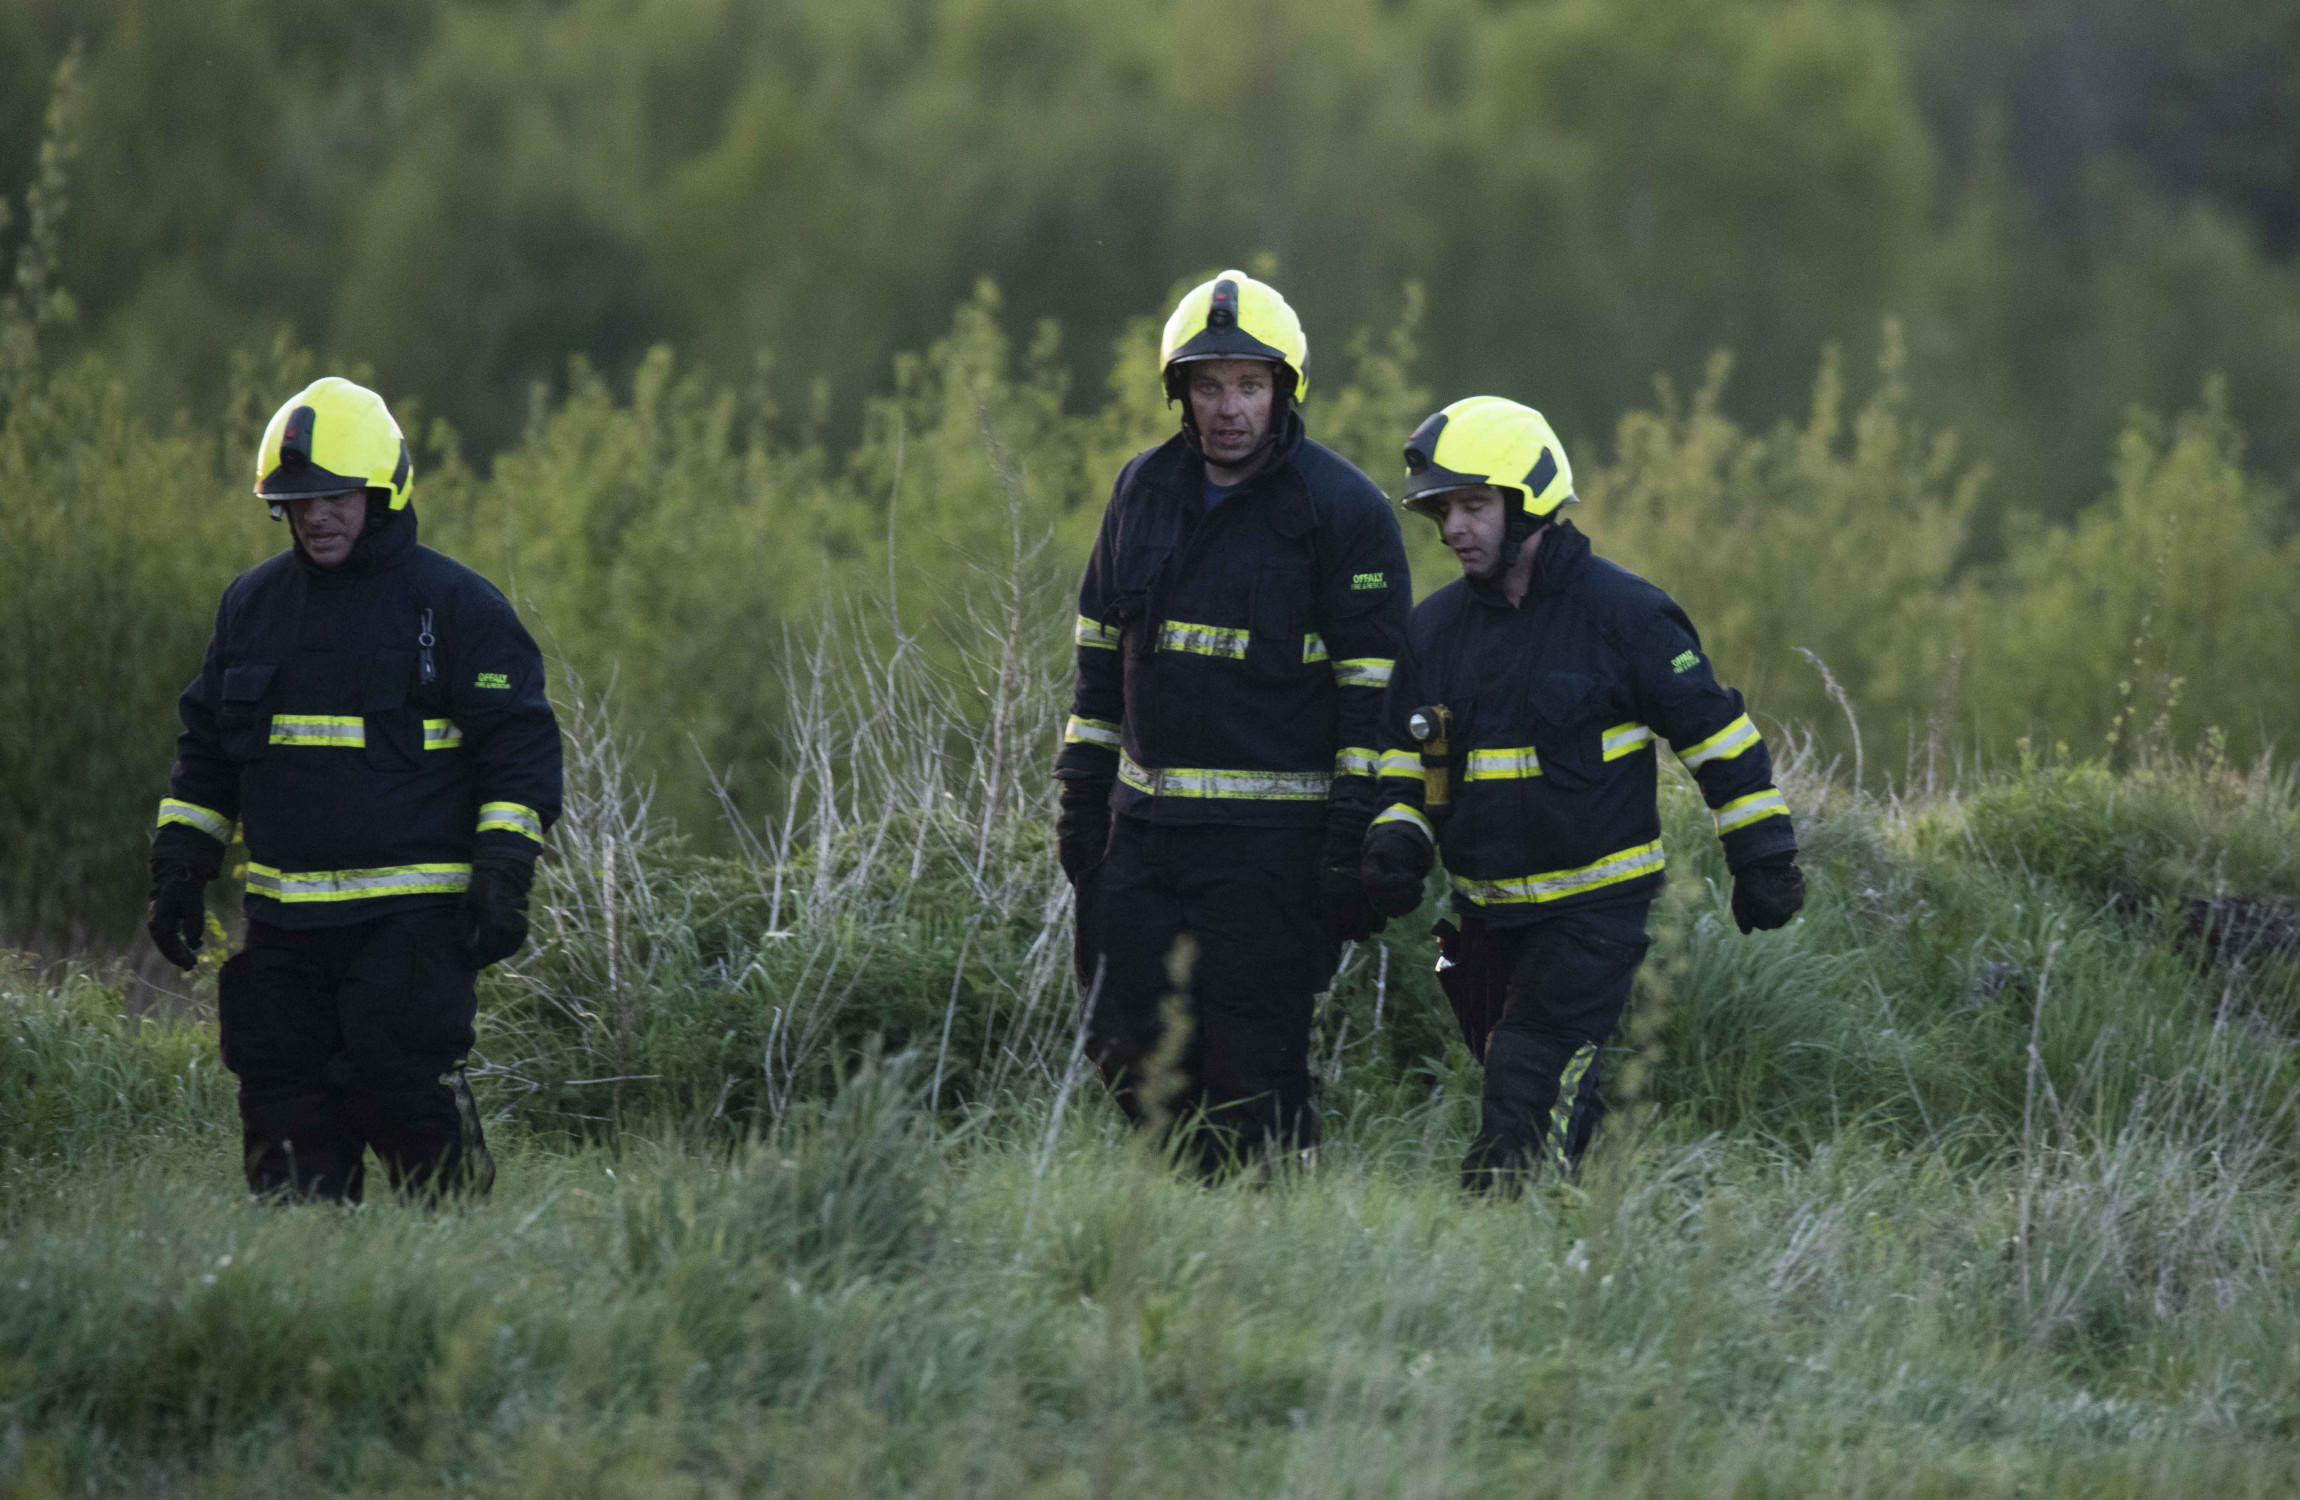 Bodies of man and boy recovered from Offaly plane crash